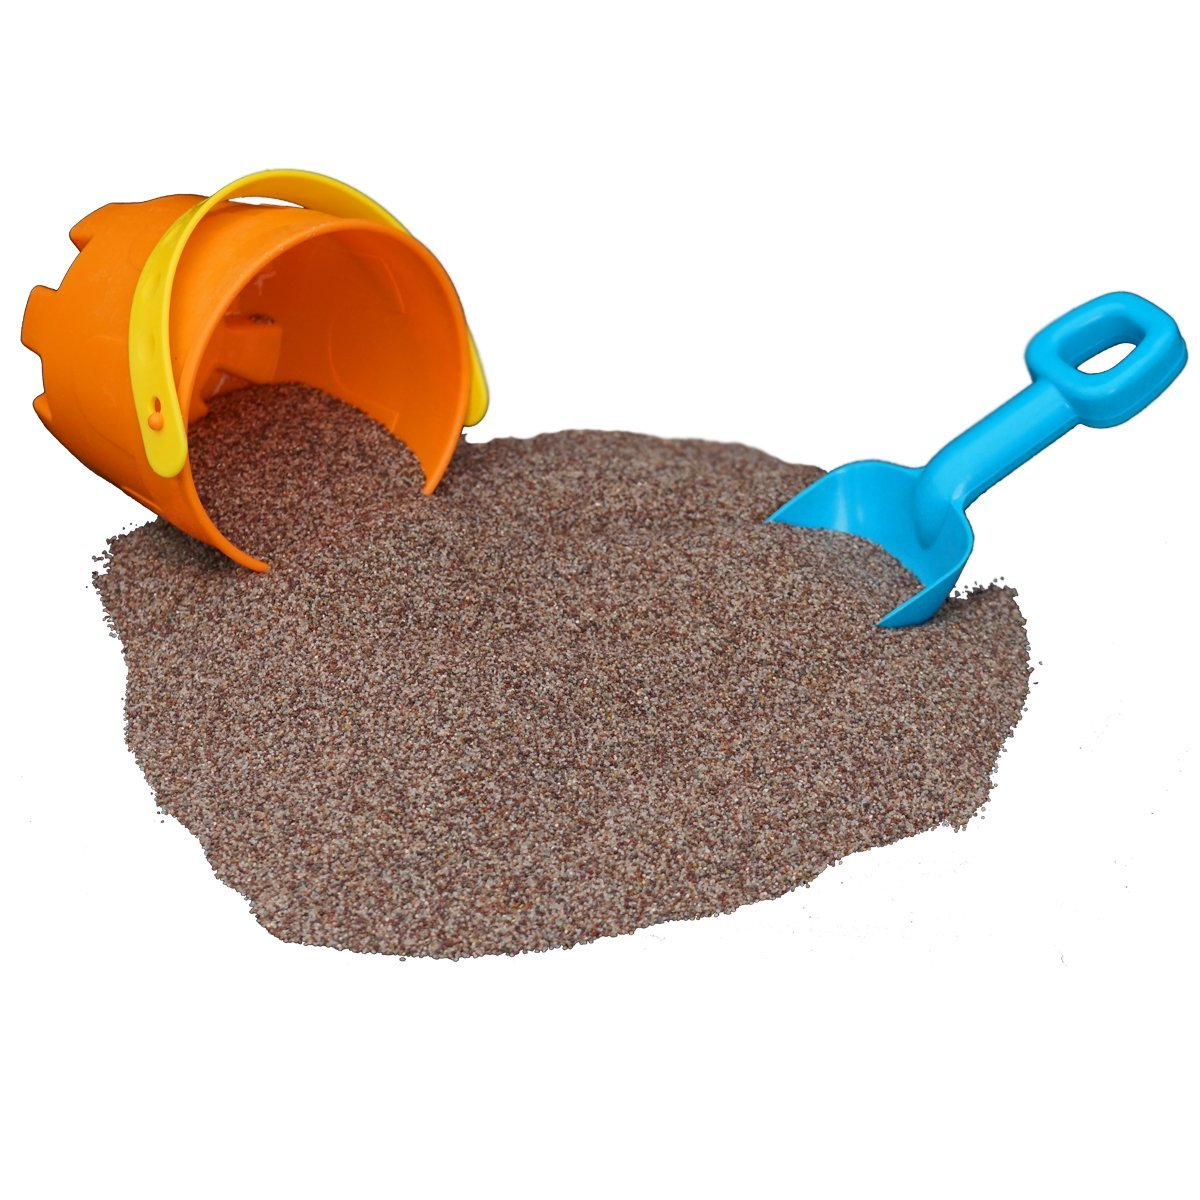 Jurassic RiverBed Play Sand - 50 Pound Sandbox Sand by Jurassic Sands